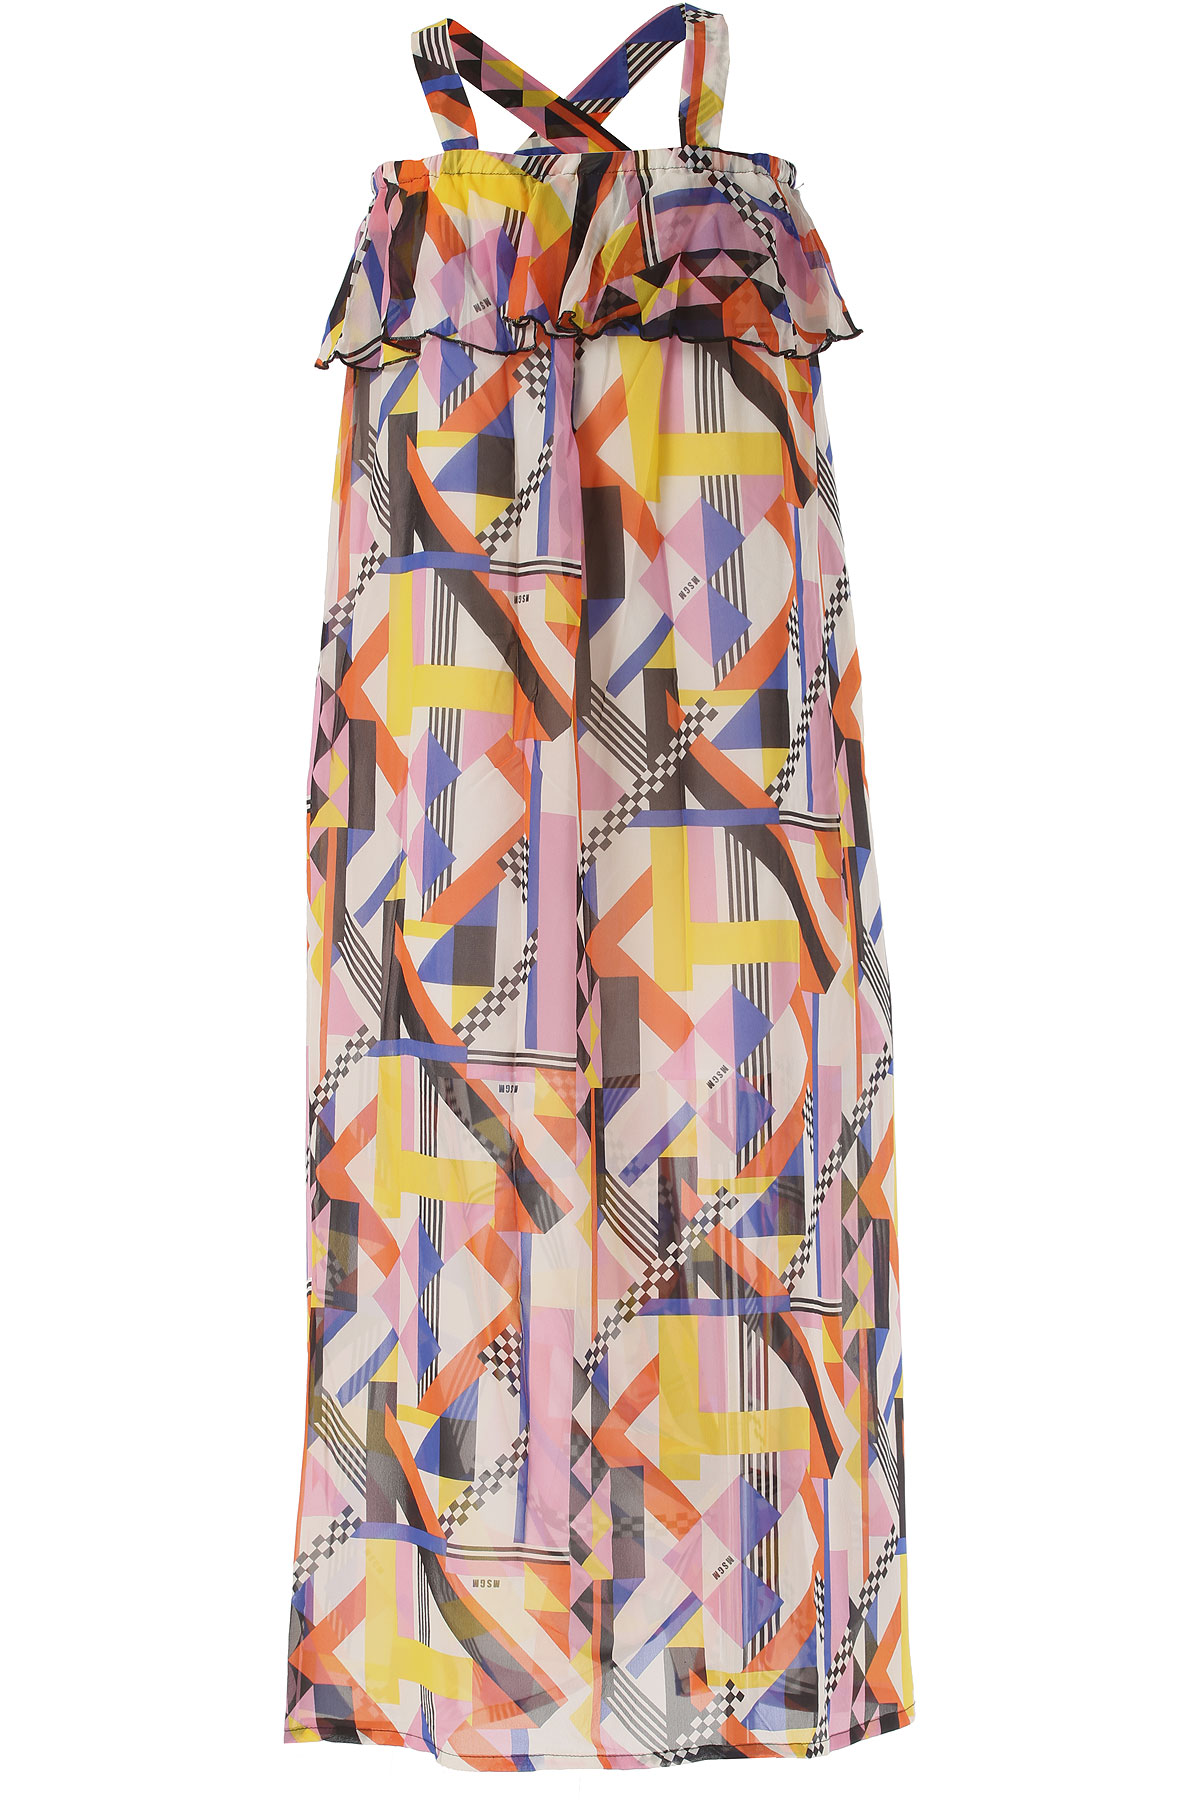 Image of MSGM Girls Dress On Sale in Outlet, Multicolor, Silk, 2017, 10Y